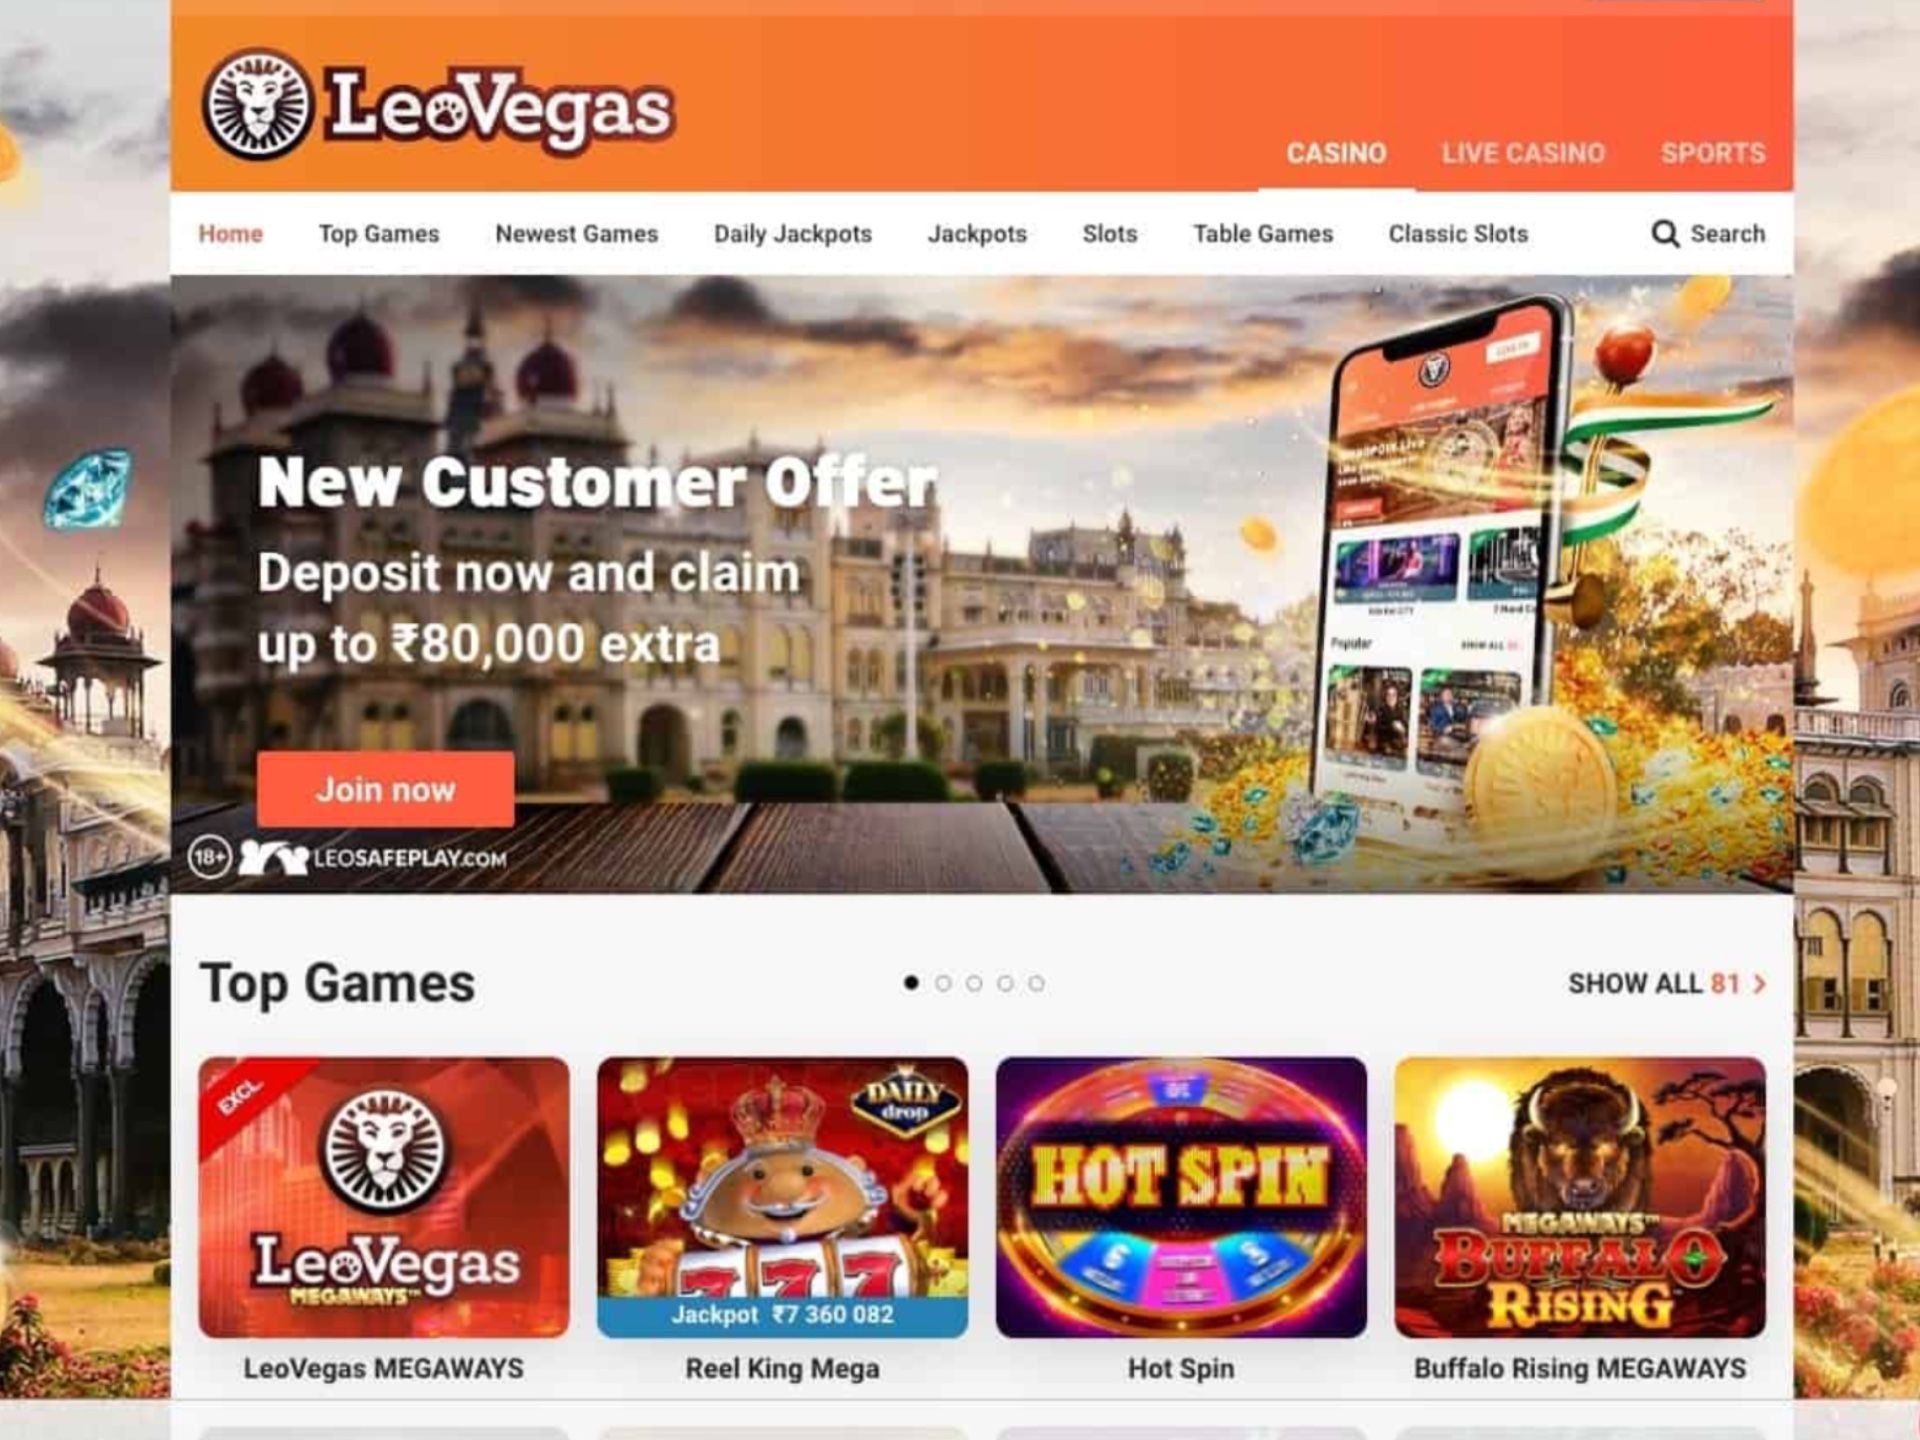 You'll get a welcome bonus after registering and depositing at LeoVegas.